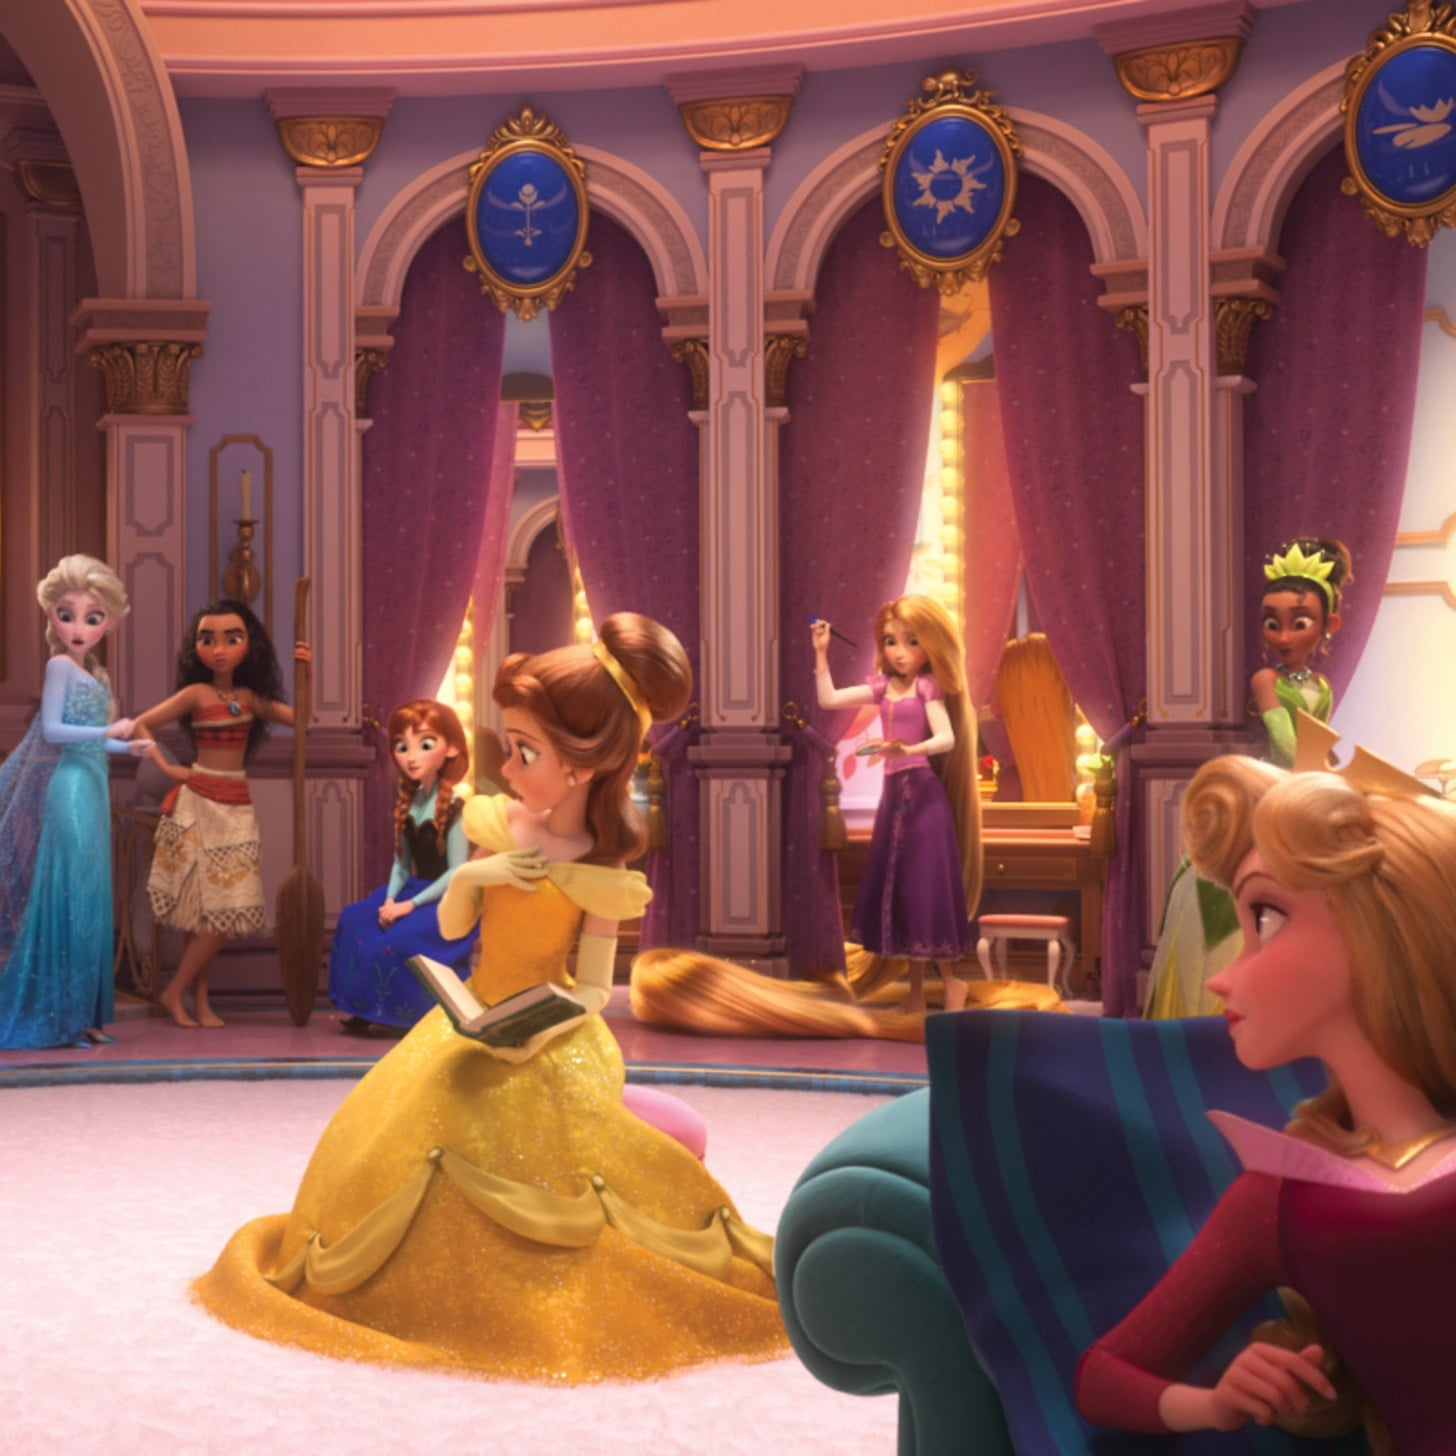 Princess tianas appearance in wreck it ralph 2 trailer popsugar princess tianas appearance in wreck it ralph 2 trailer popsugar beauty altavistaventures Gallery